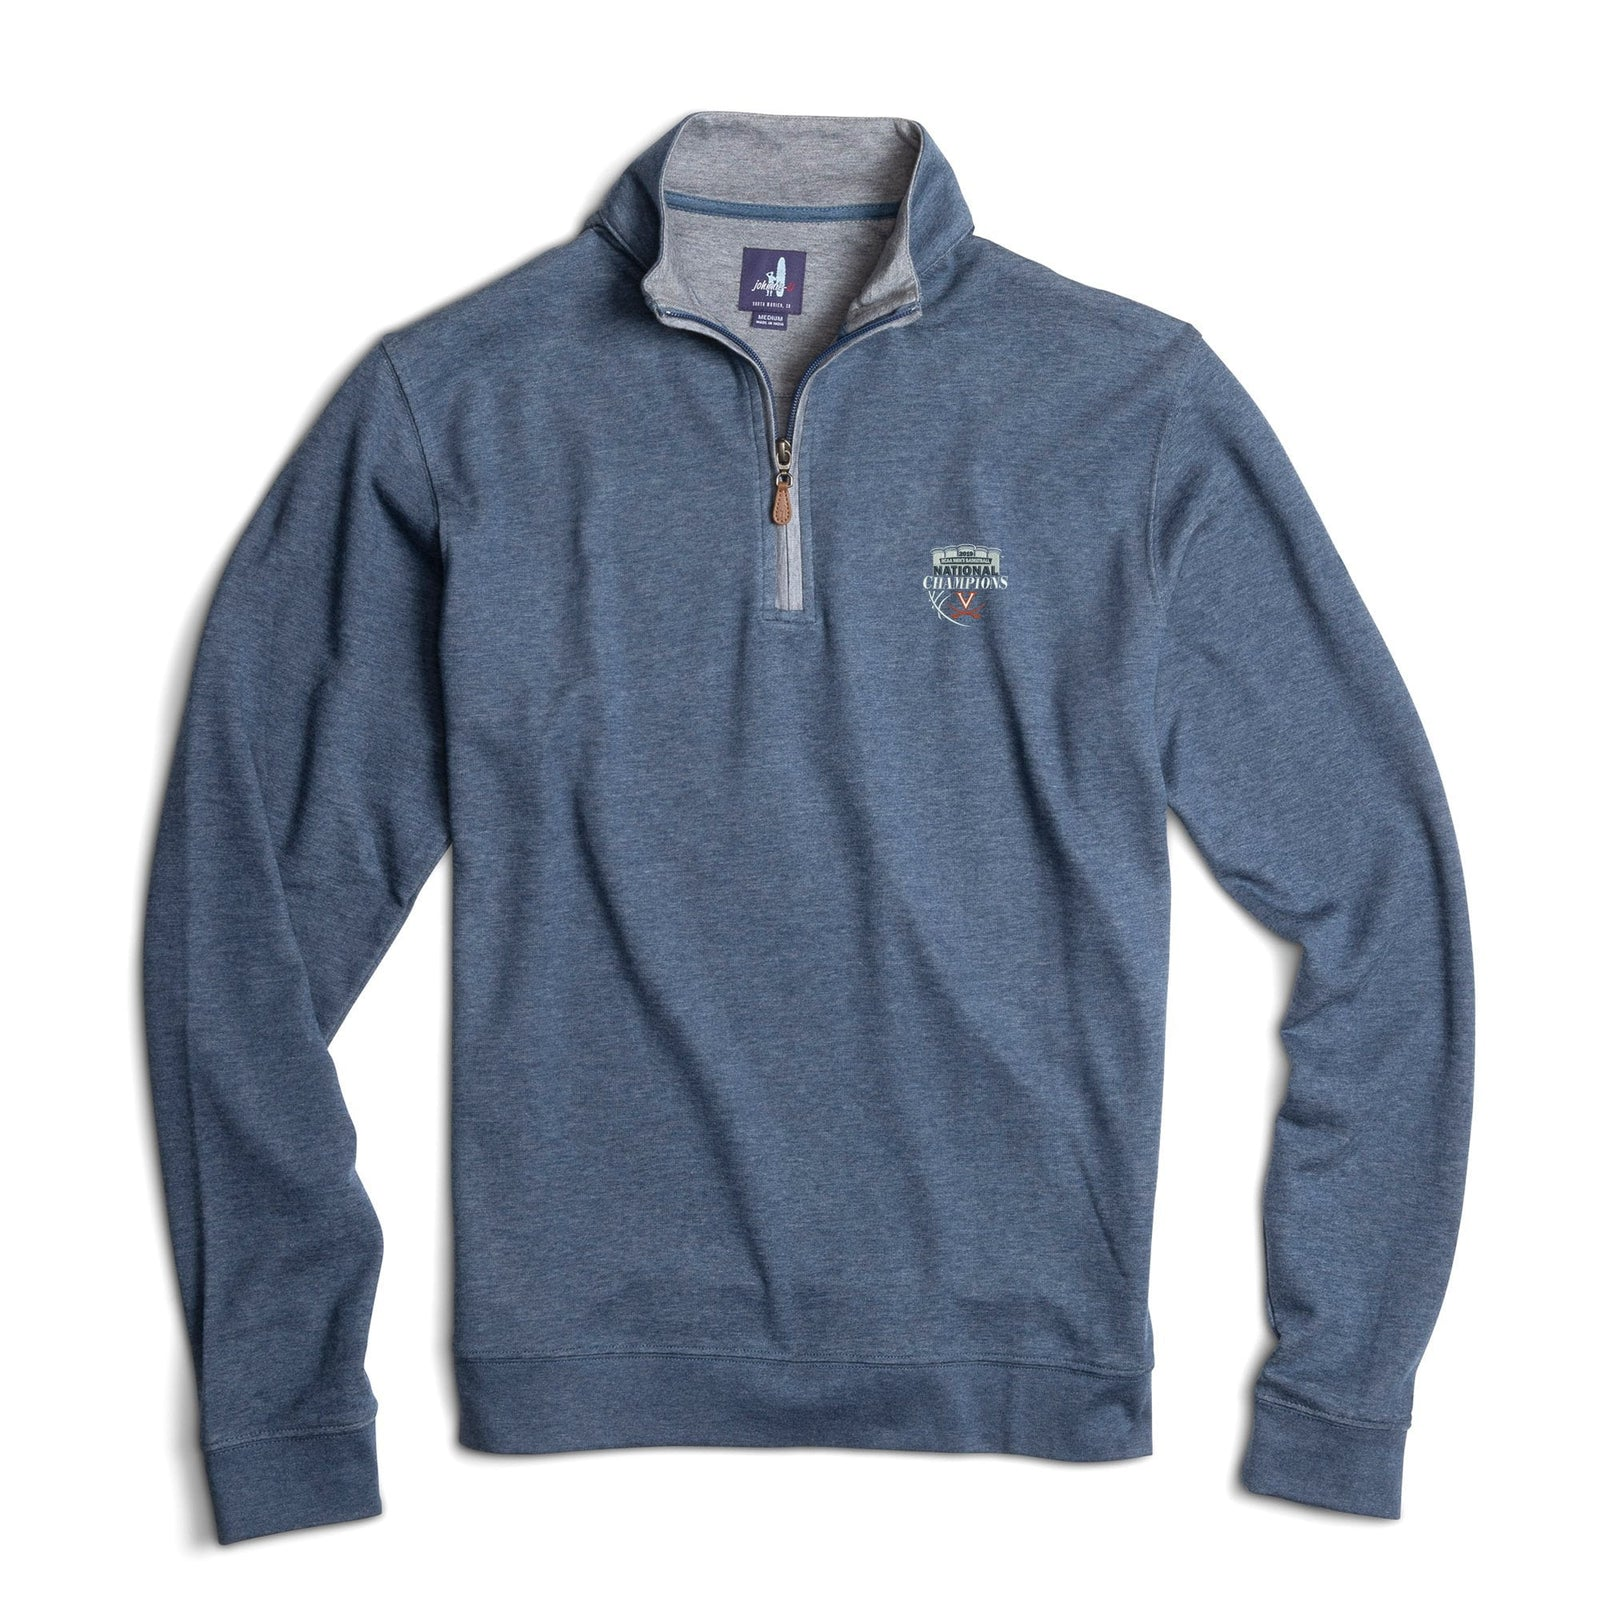 82344c75fccf15 University of Virginia National Champions Sully 1/4 Zip Pullover ...